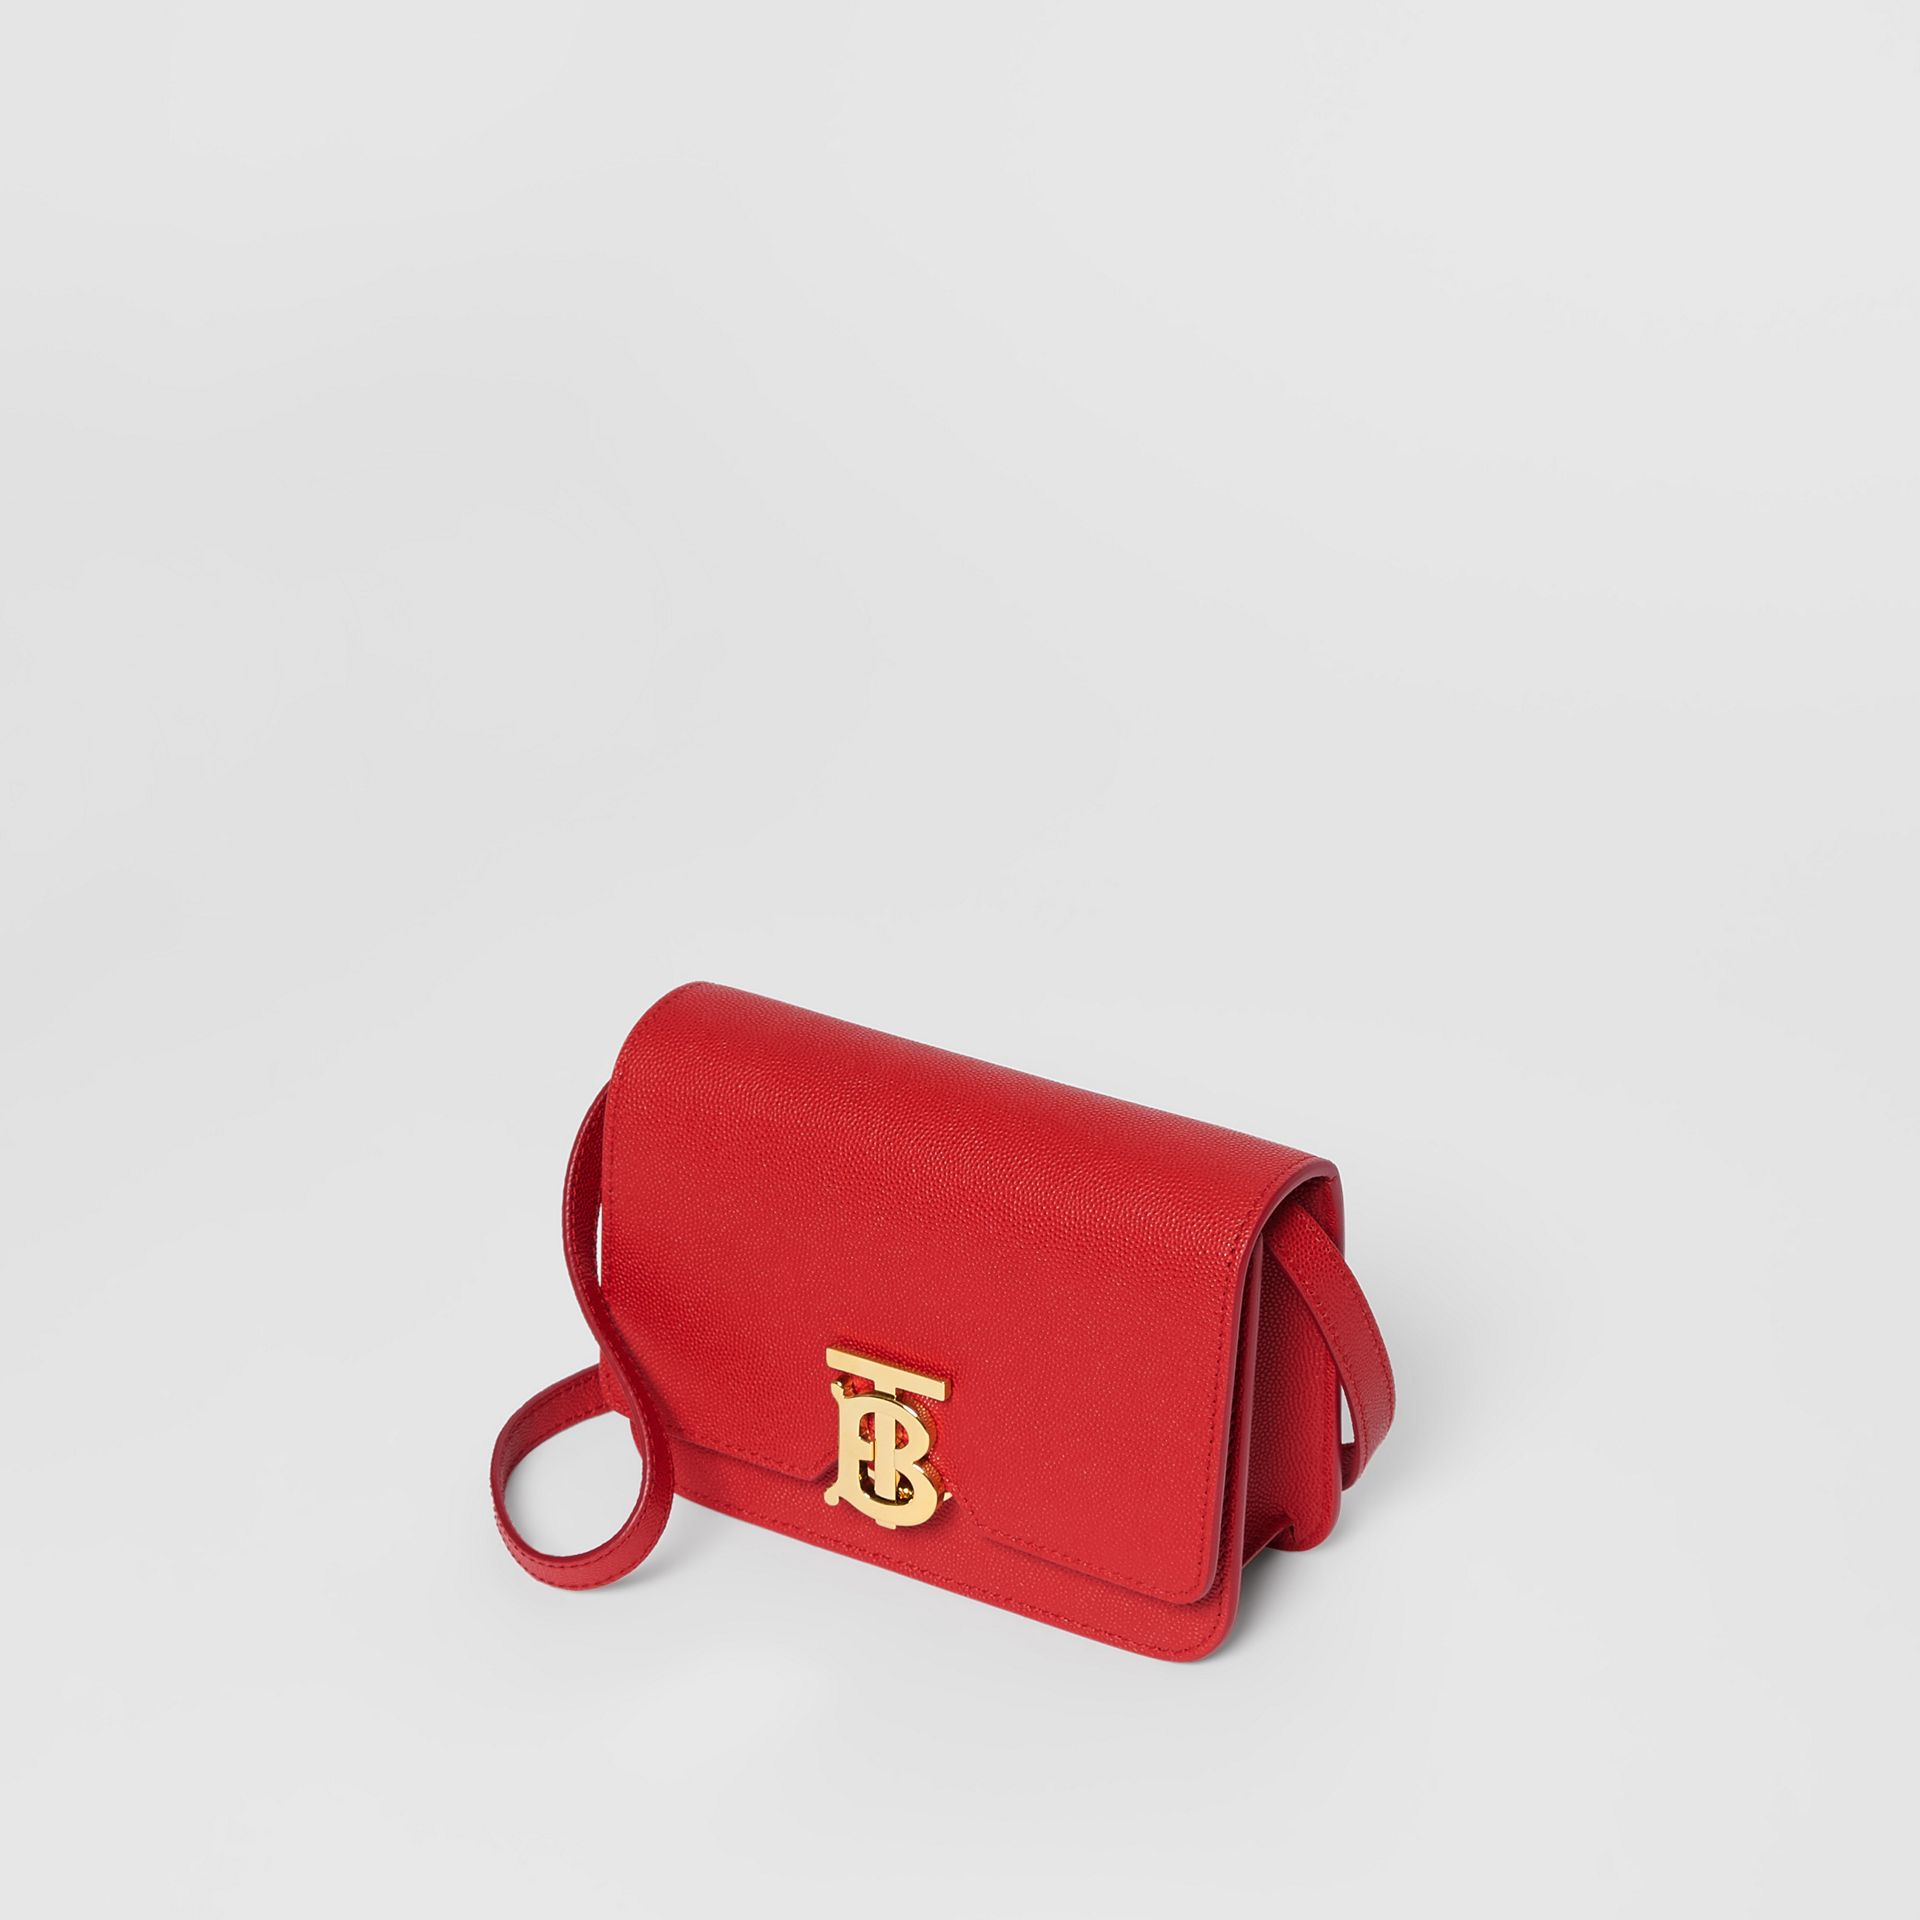 Mini Grainy Leather TB Bag in Bright Red - Women | Burberry United States - gallery image 2